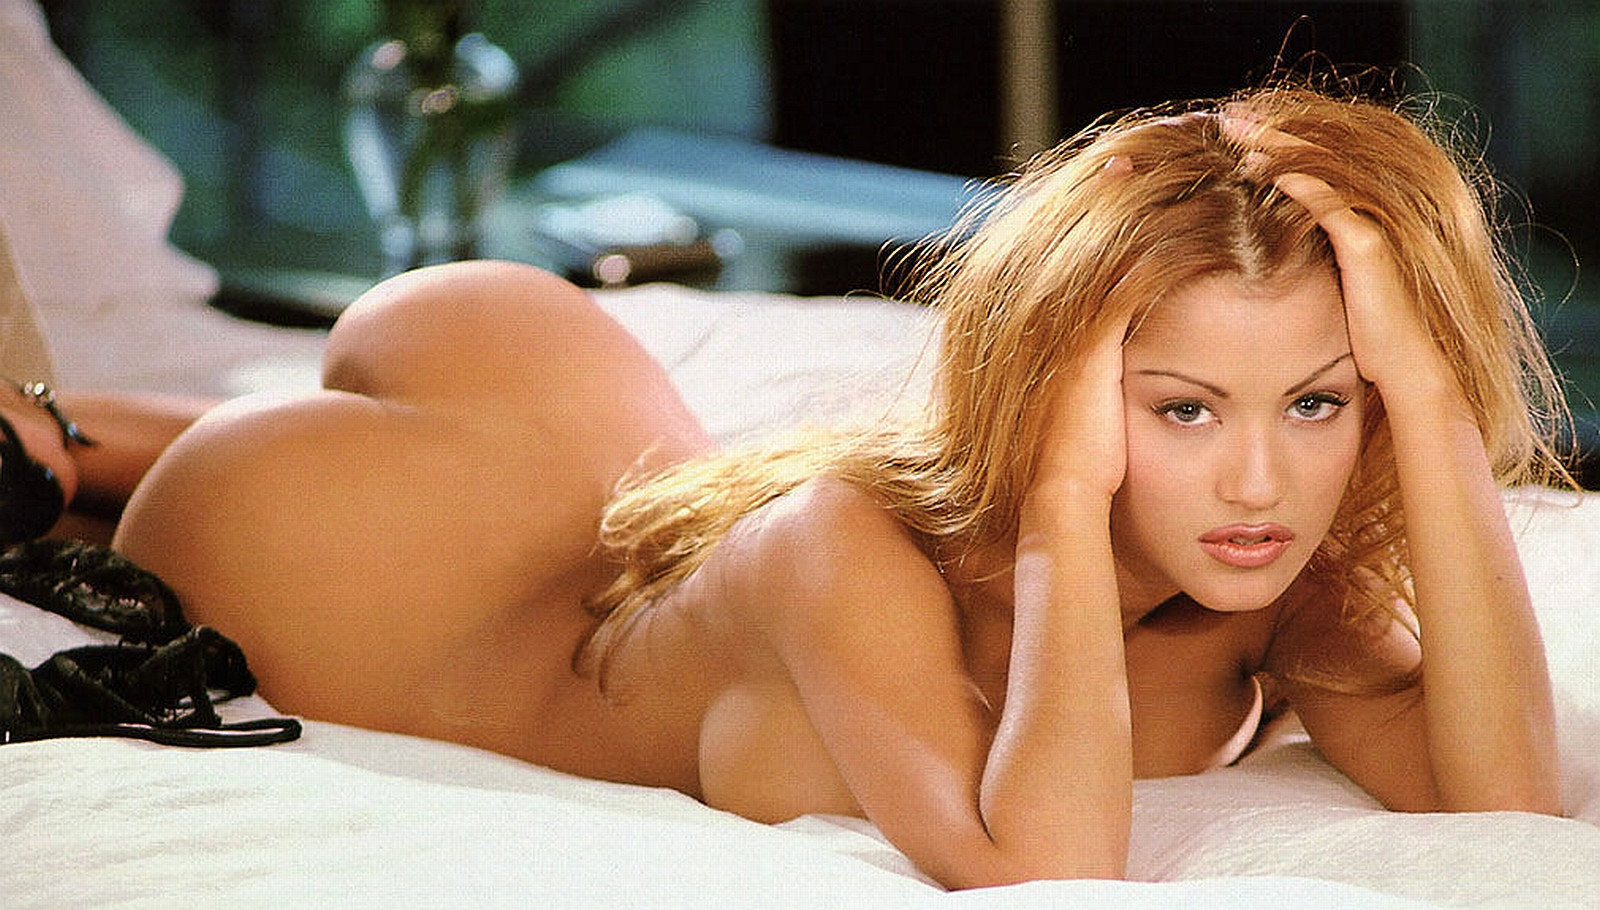 hot milf: jennifer aniston hot nude fake alley baggett playboy